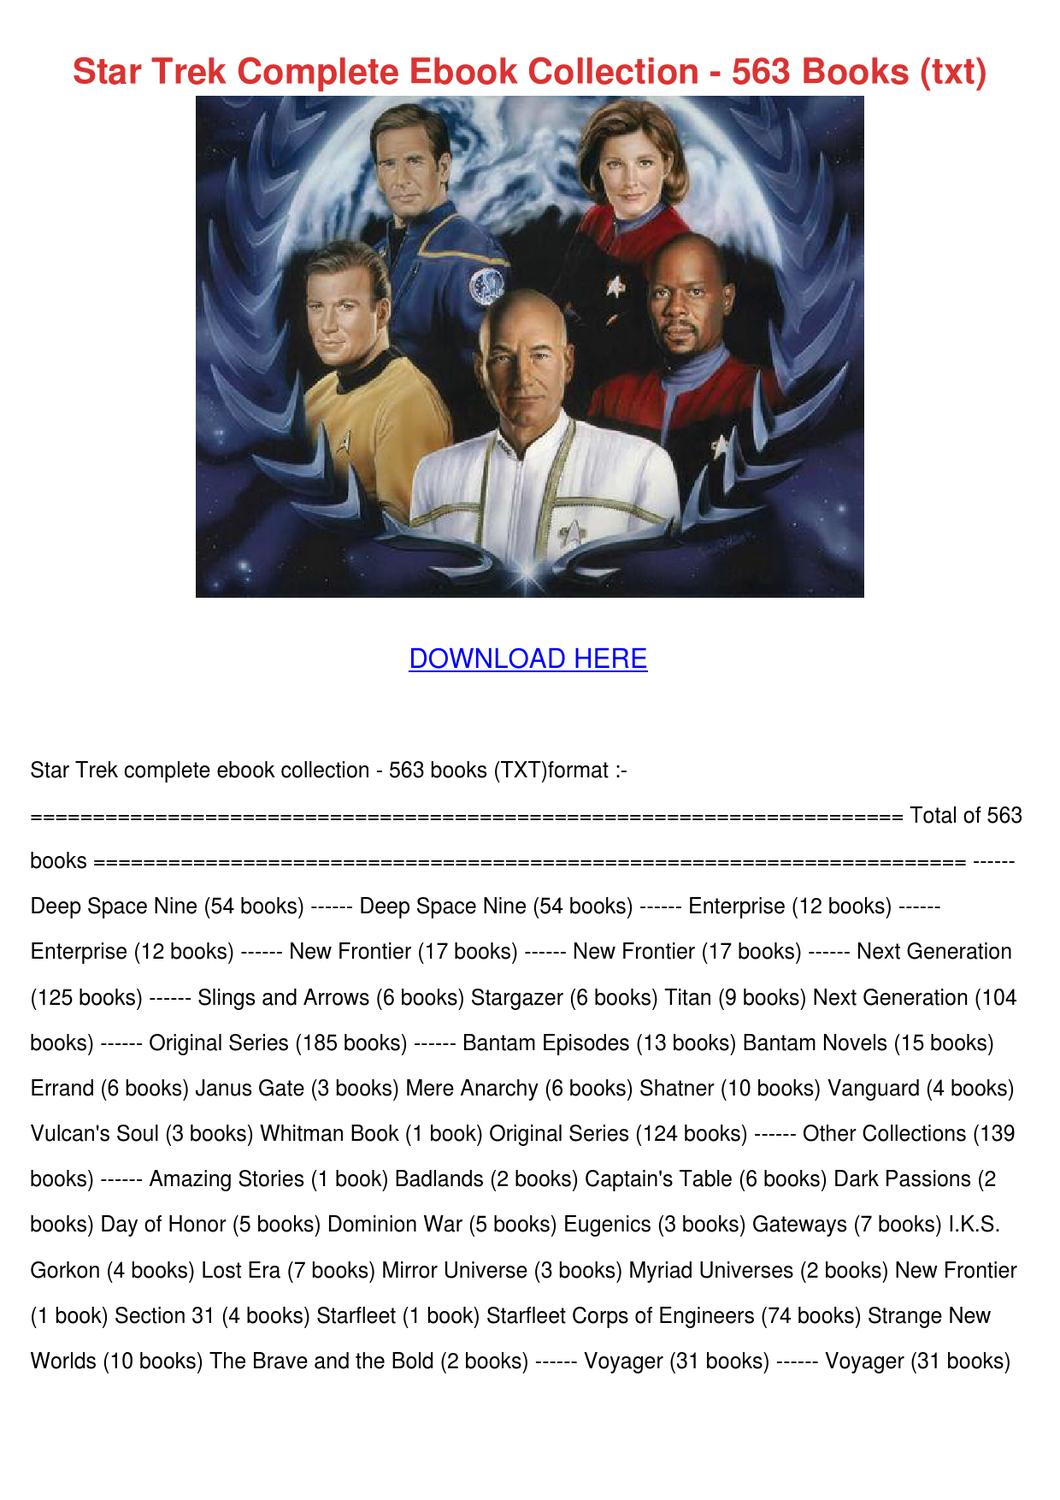 Star Trek Complete Ebook Collection 563 Books by MohammedMichels ...